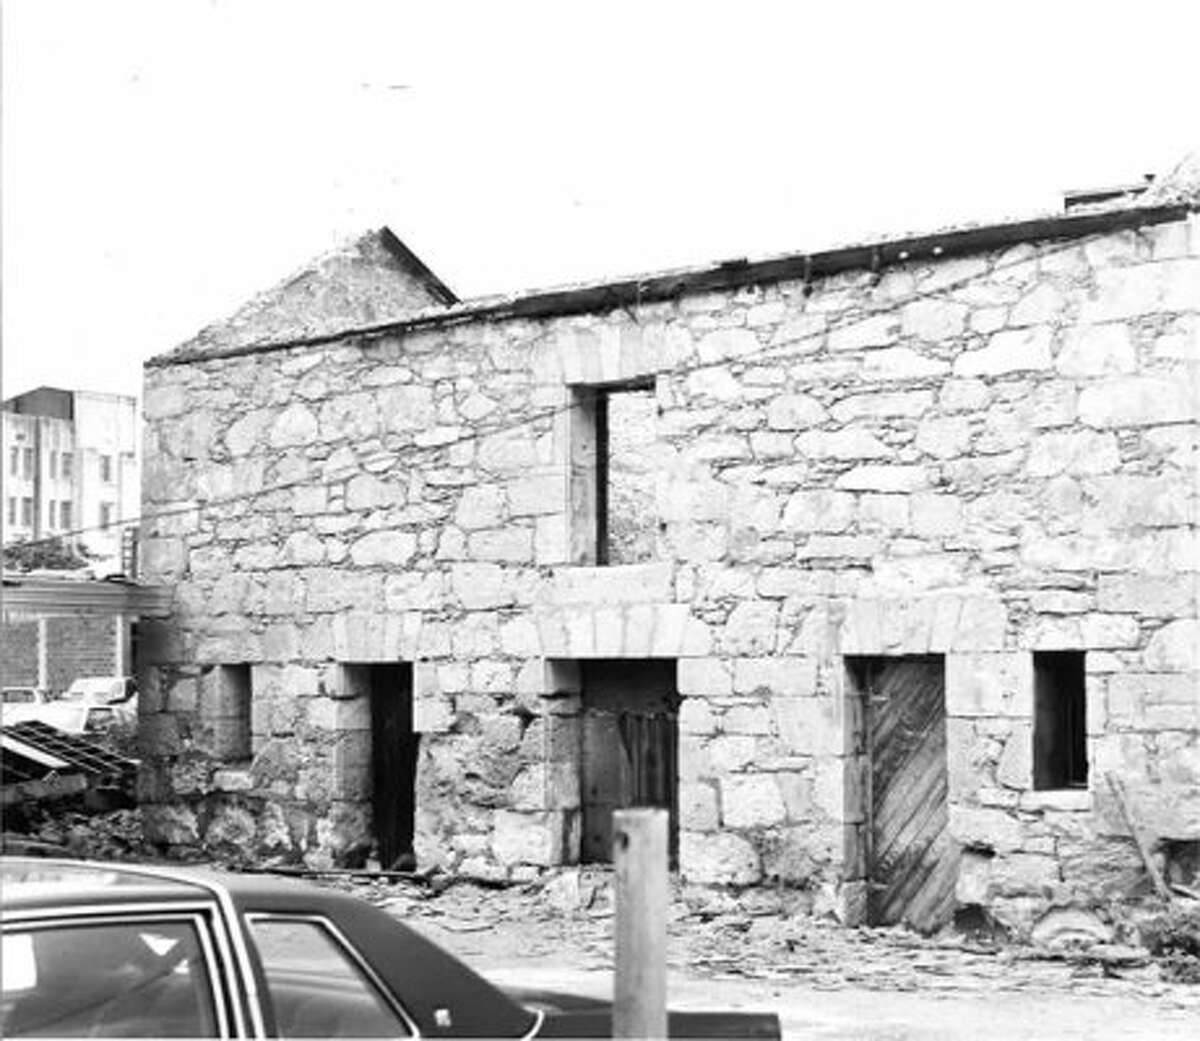 In 1982, the Stuemke Barn was moved from 215 N. Flores St. to 107 King William after the Conservation Society acquired the building.